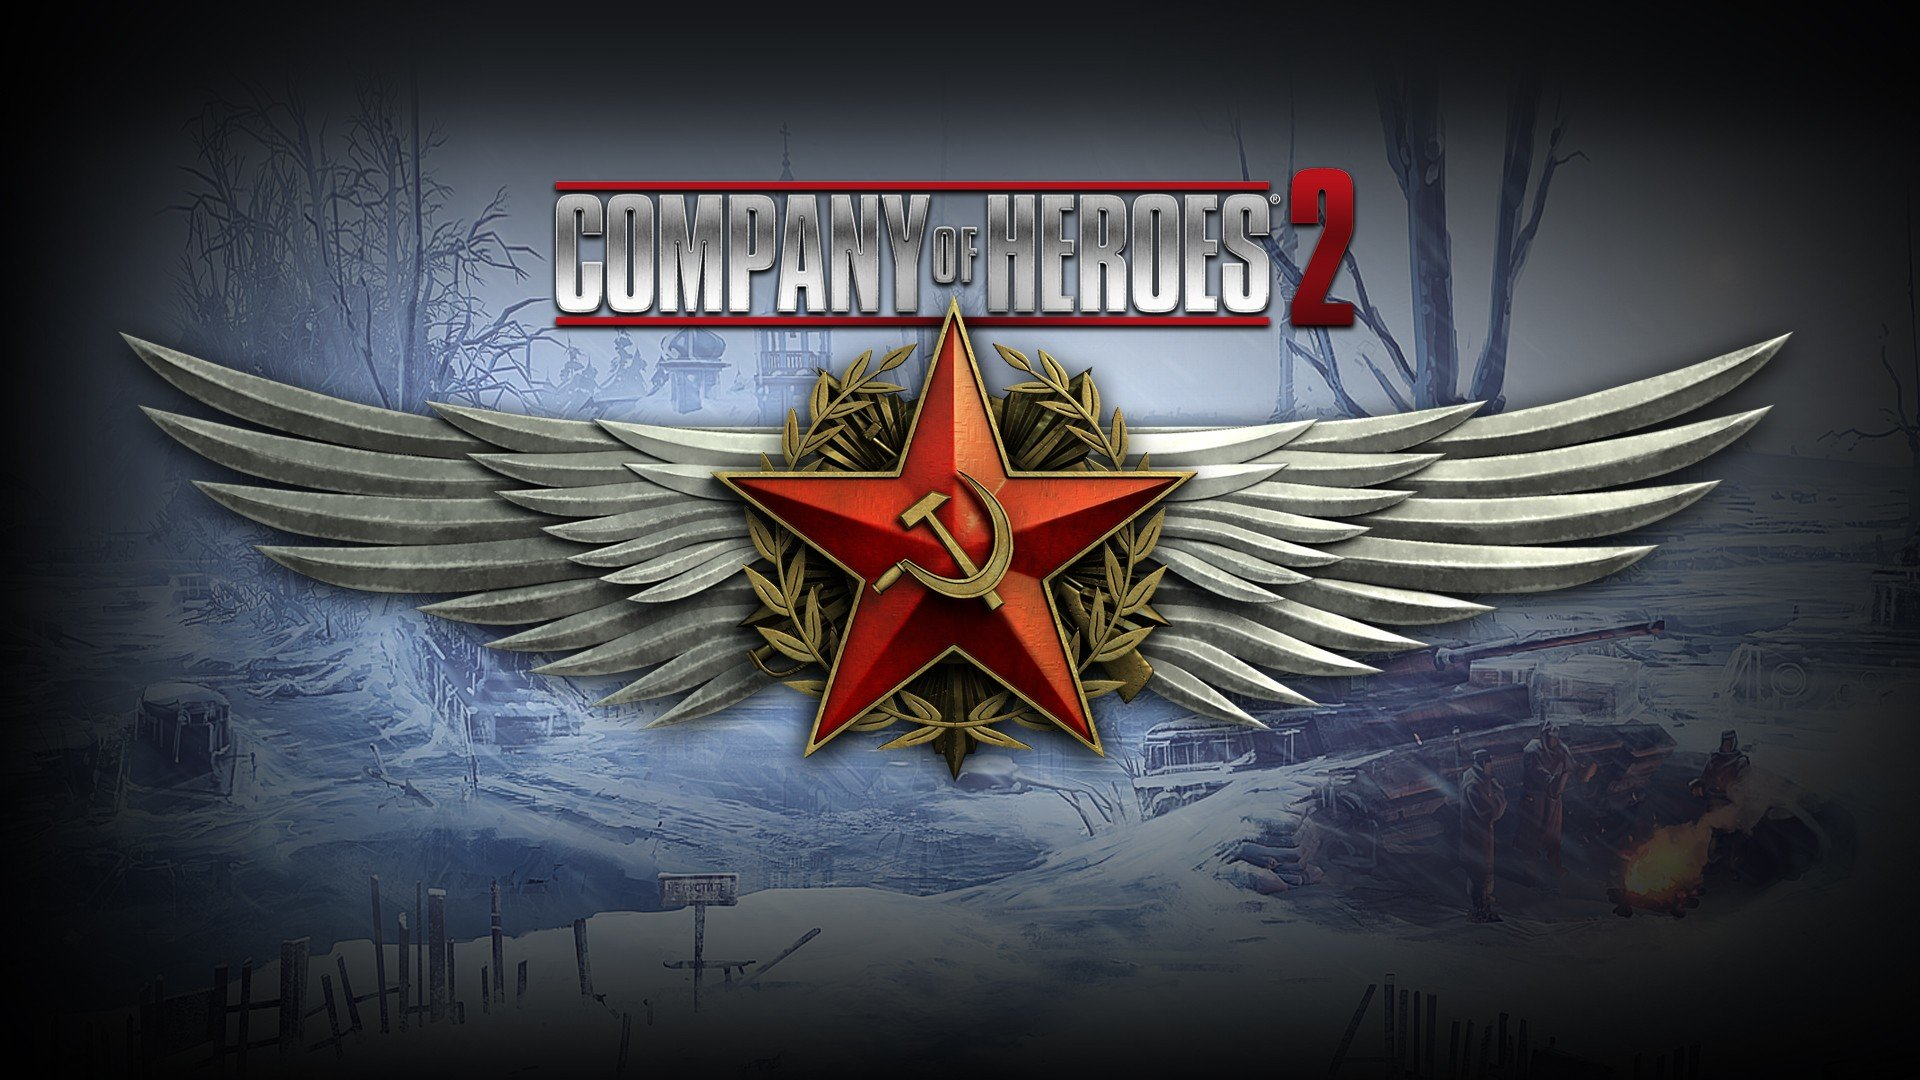 Download Full Hd 1920x1080 Company Of Heroes 2 Computer